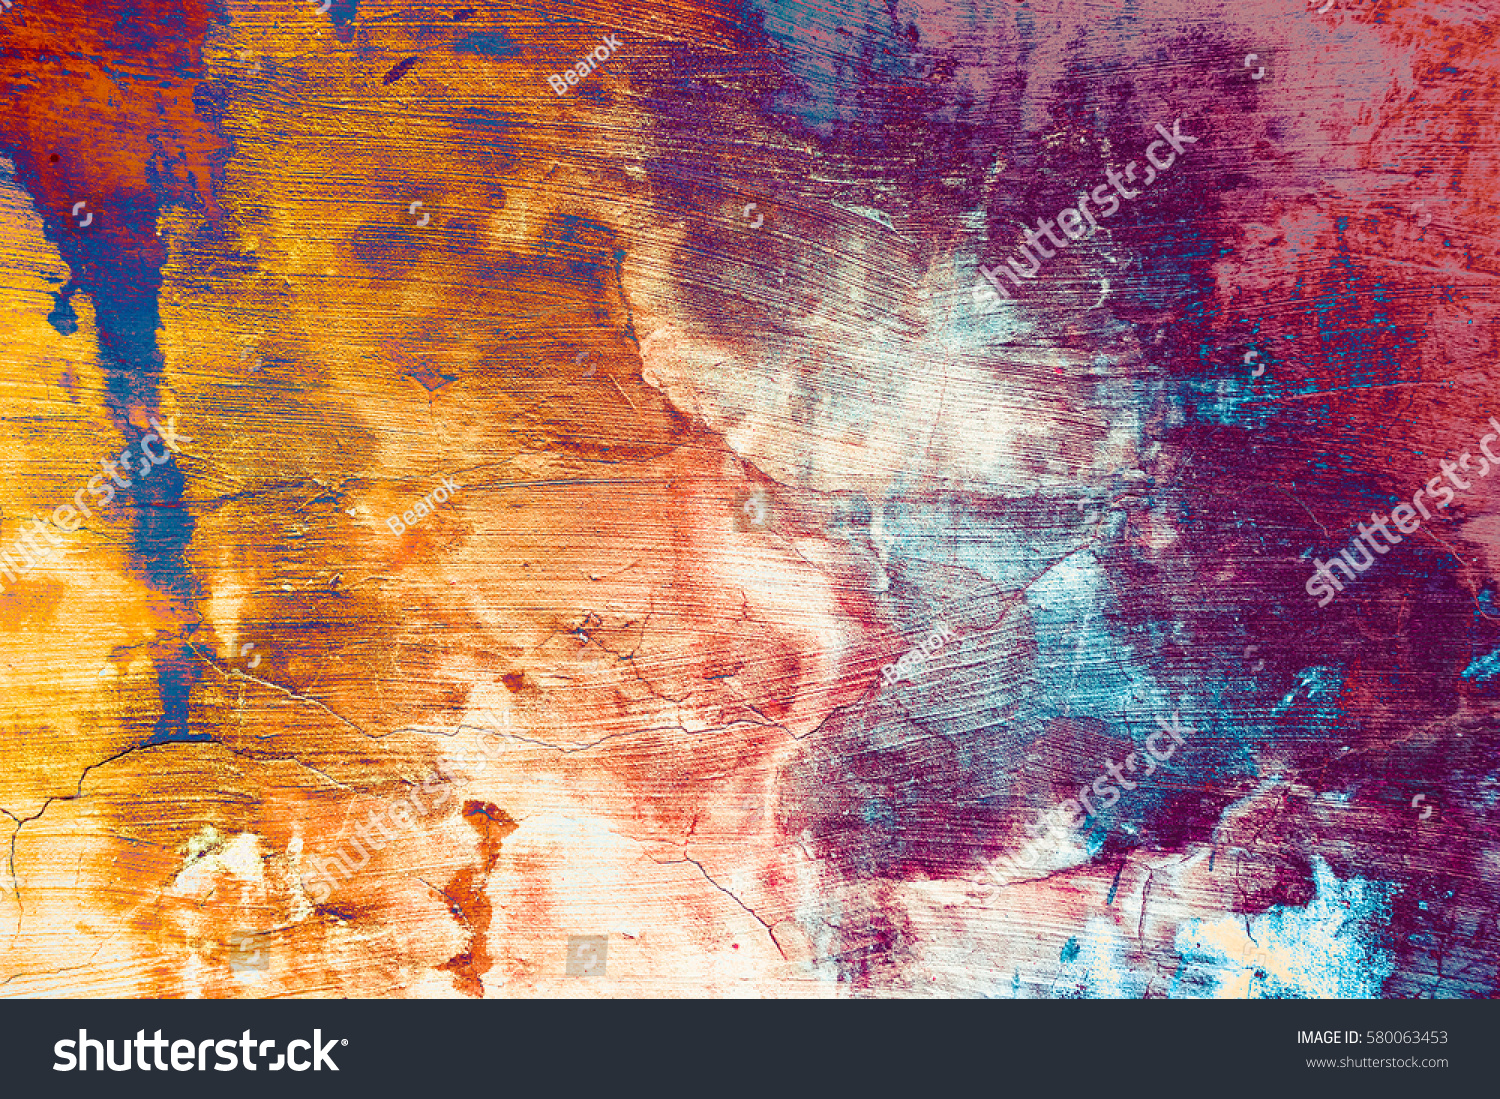 Amazing Free Colorful Grunge Textures Download: Grunge Background Wall Texture Colorful Paint Stock Photo